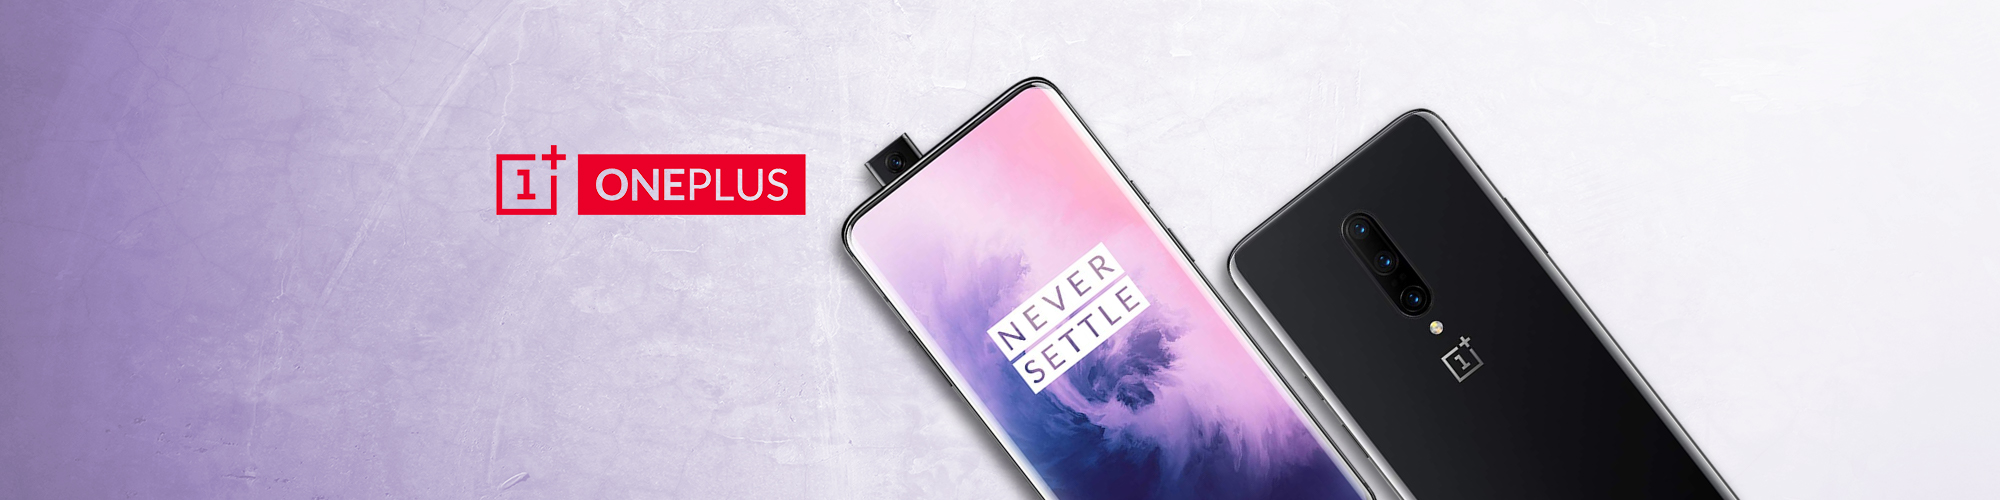 Stand a chance to win OnePlus 7 Pro for just 200 InterMiles